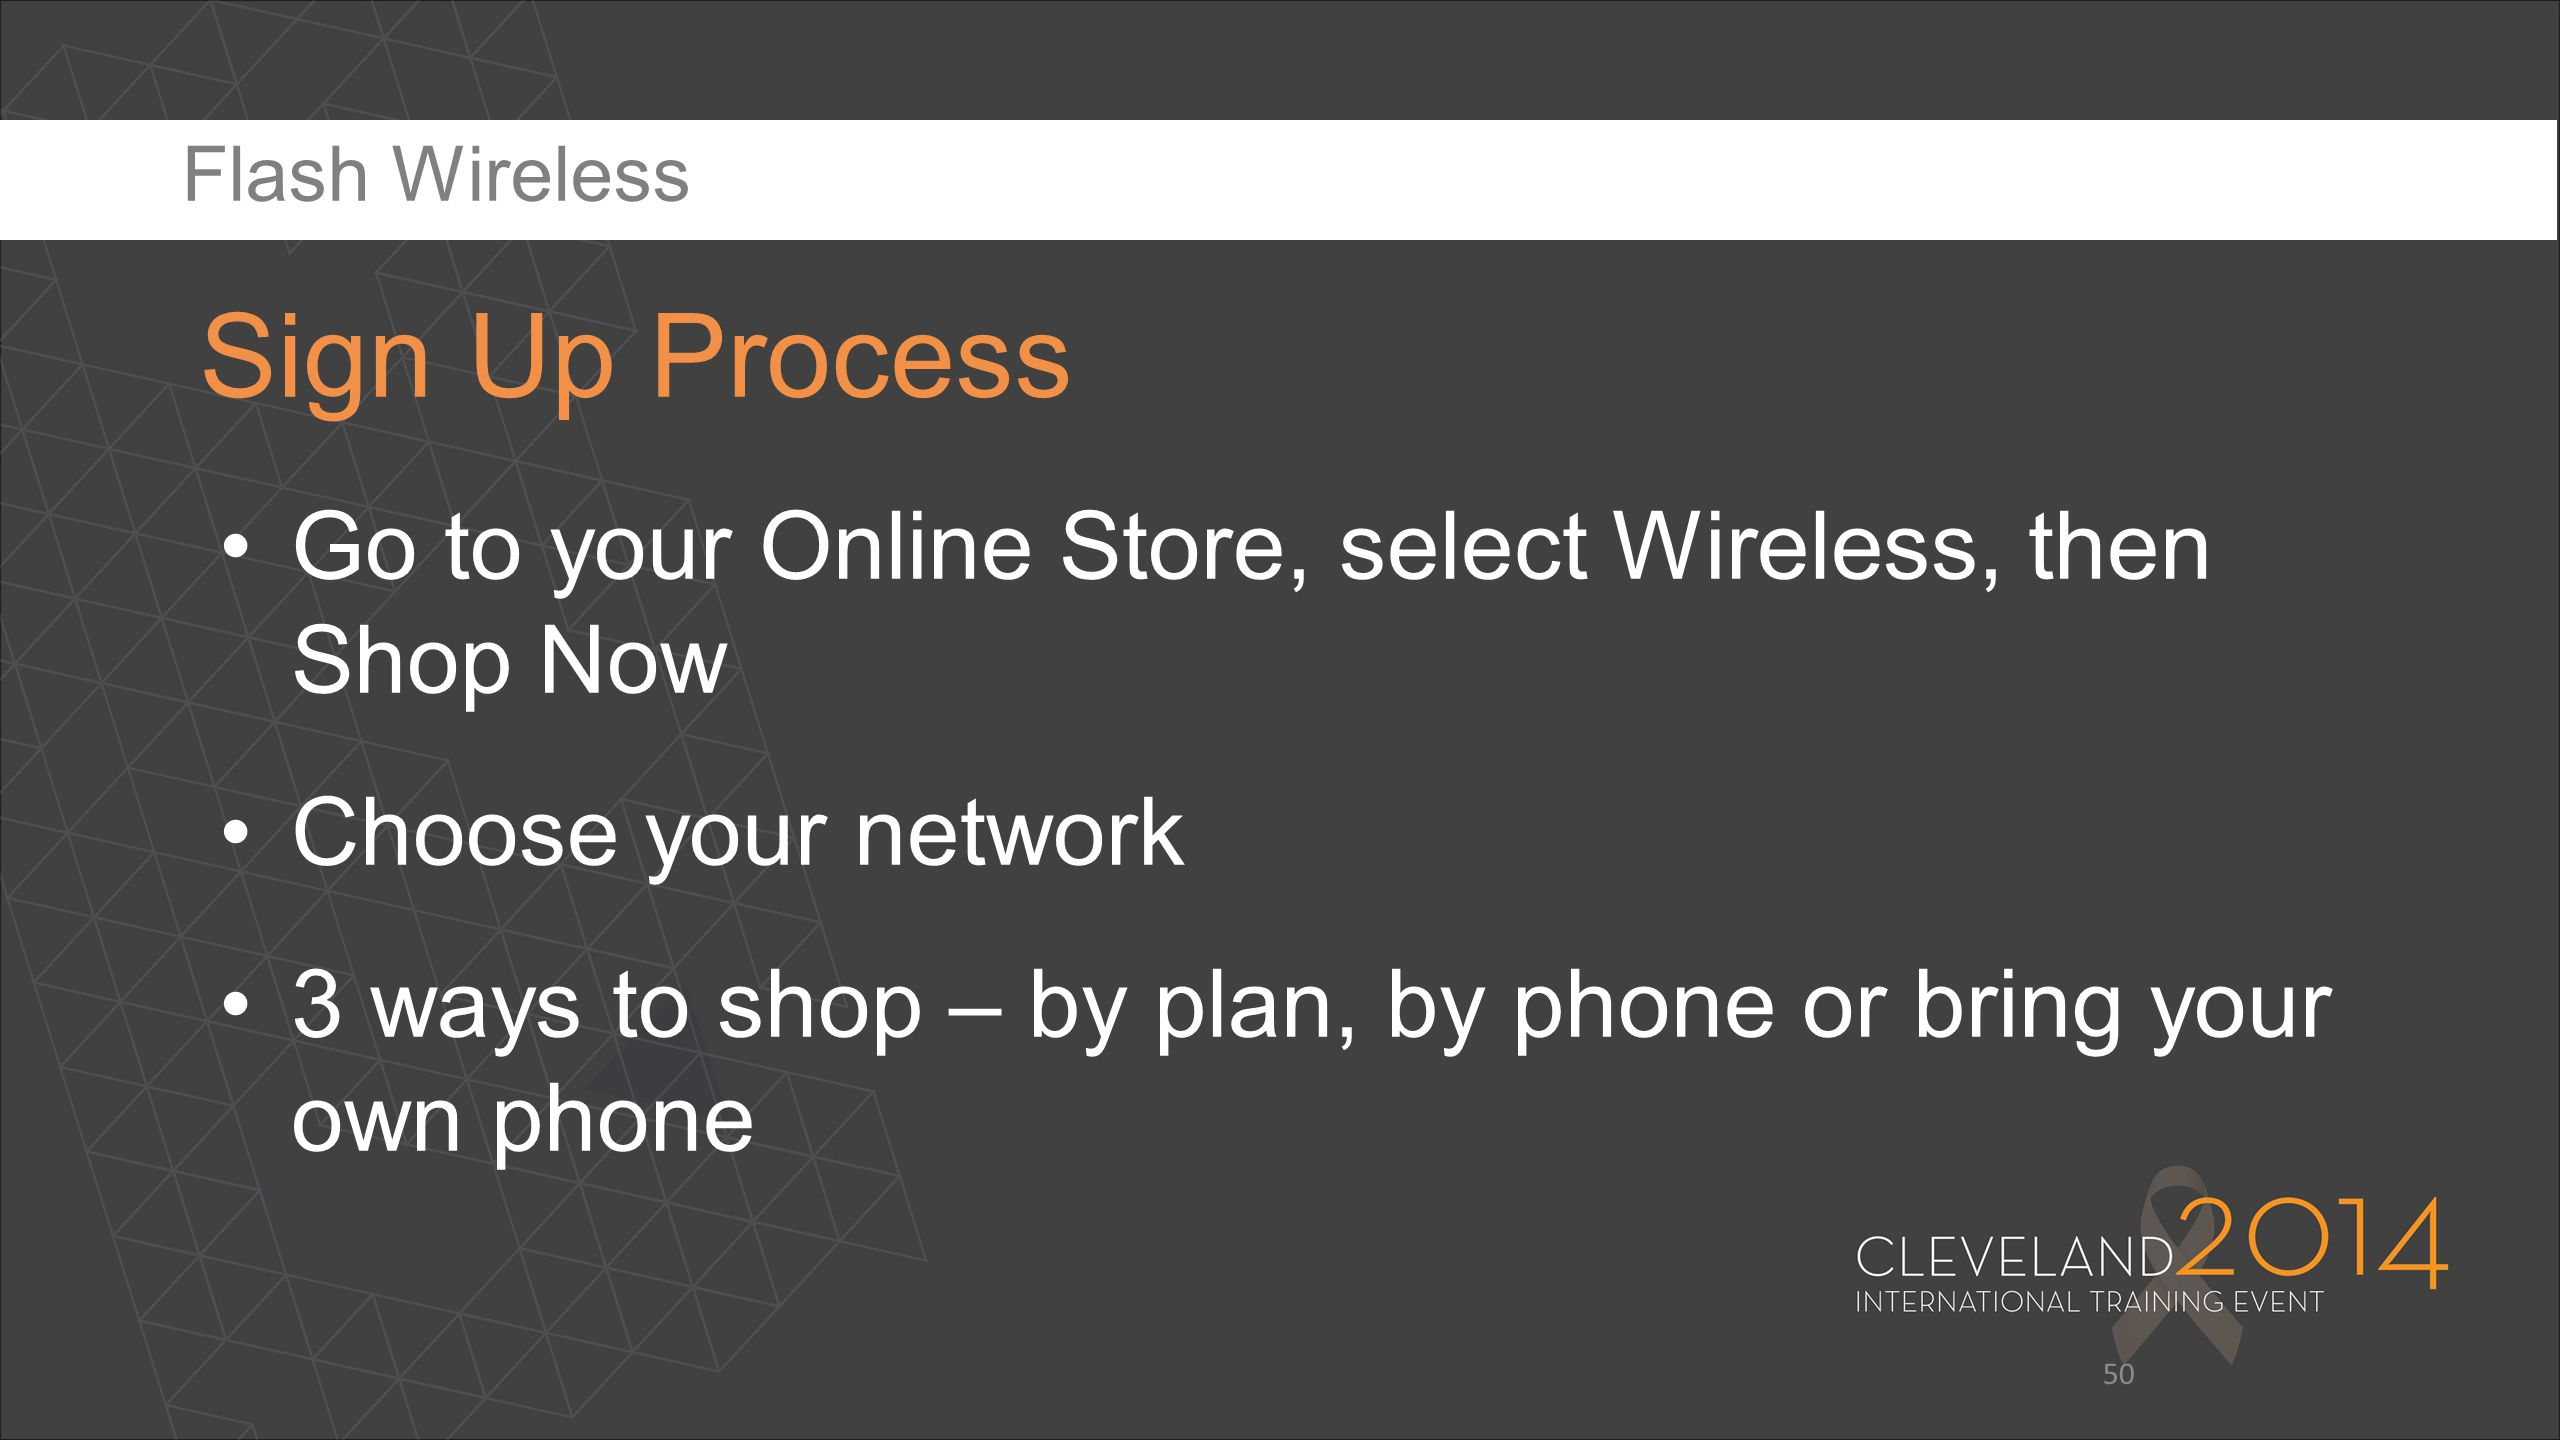 Flash Wireless Sign Up Process. Update based on new website. Go to your Online Store, select Wireless, then Shop Now.